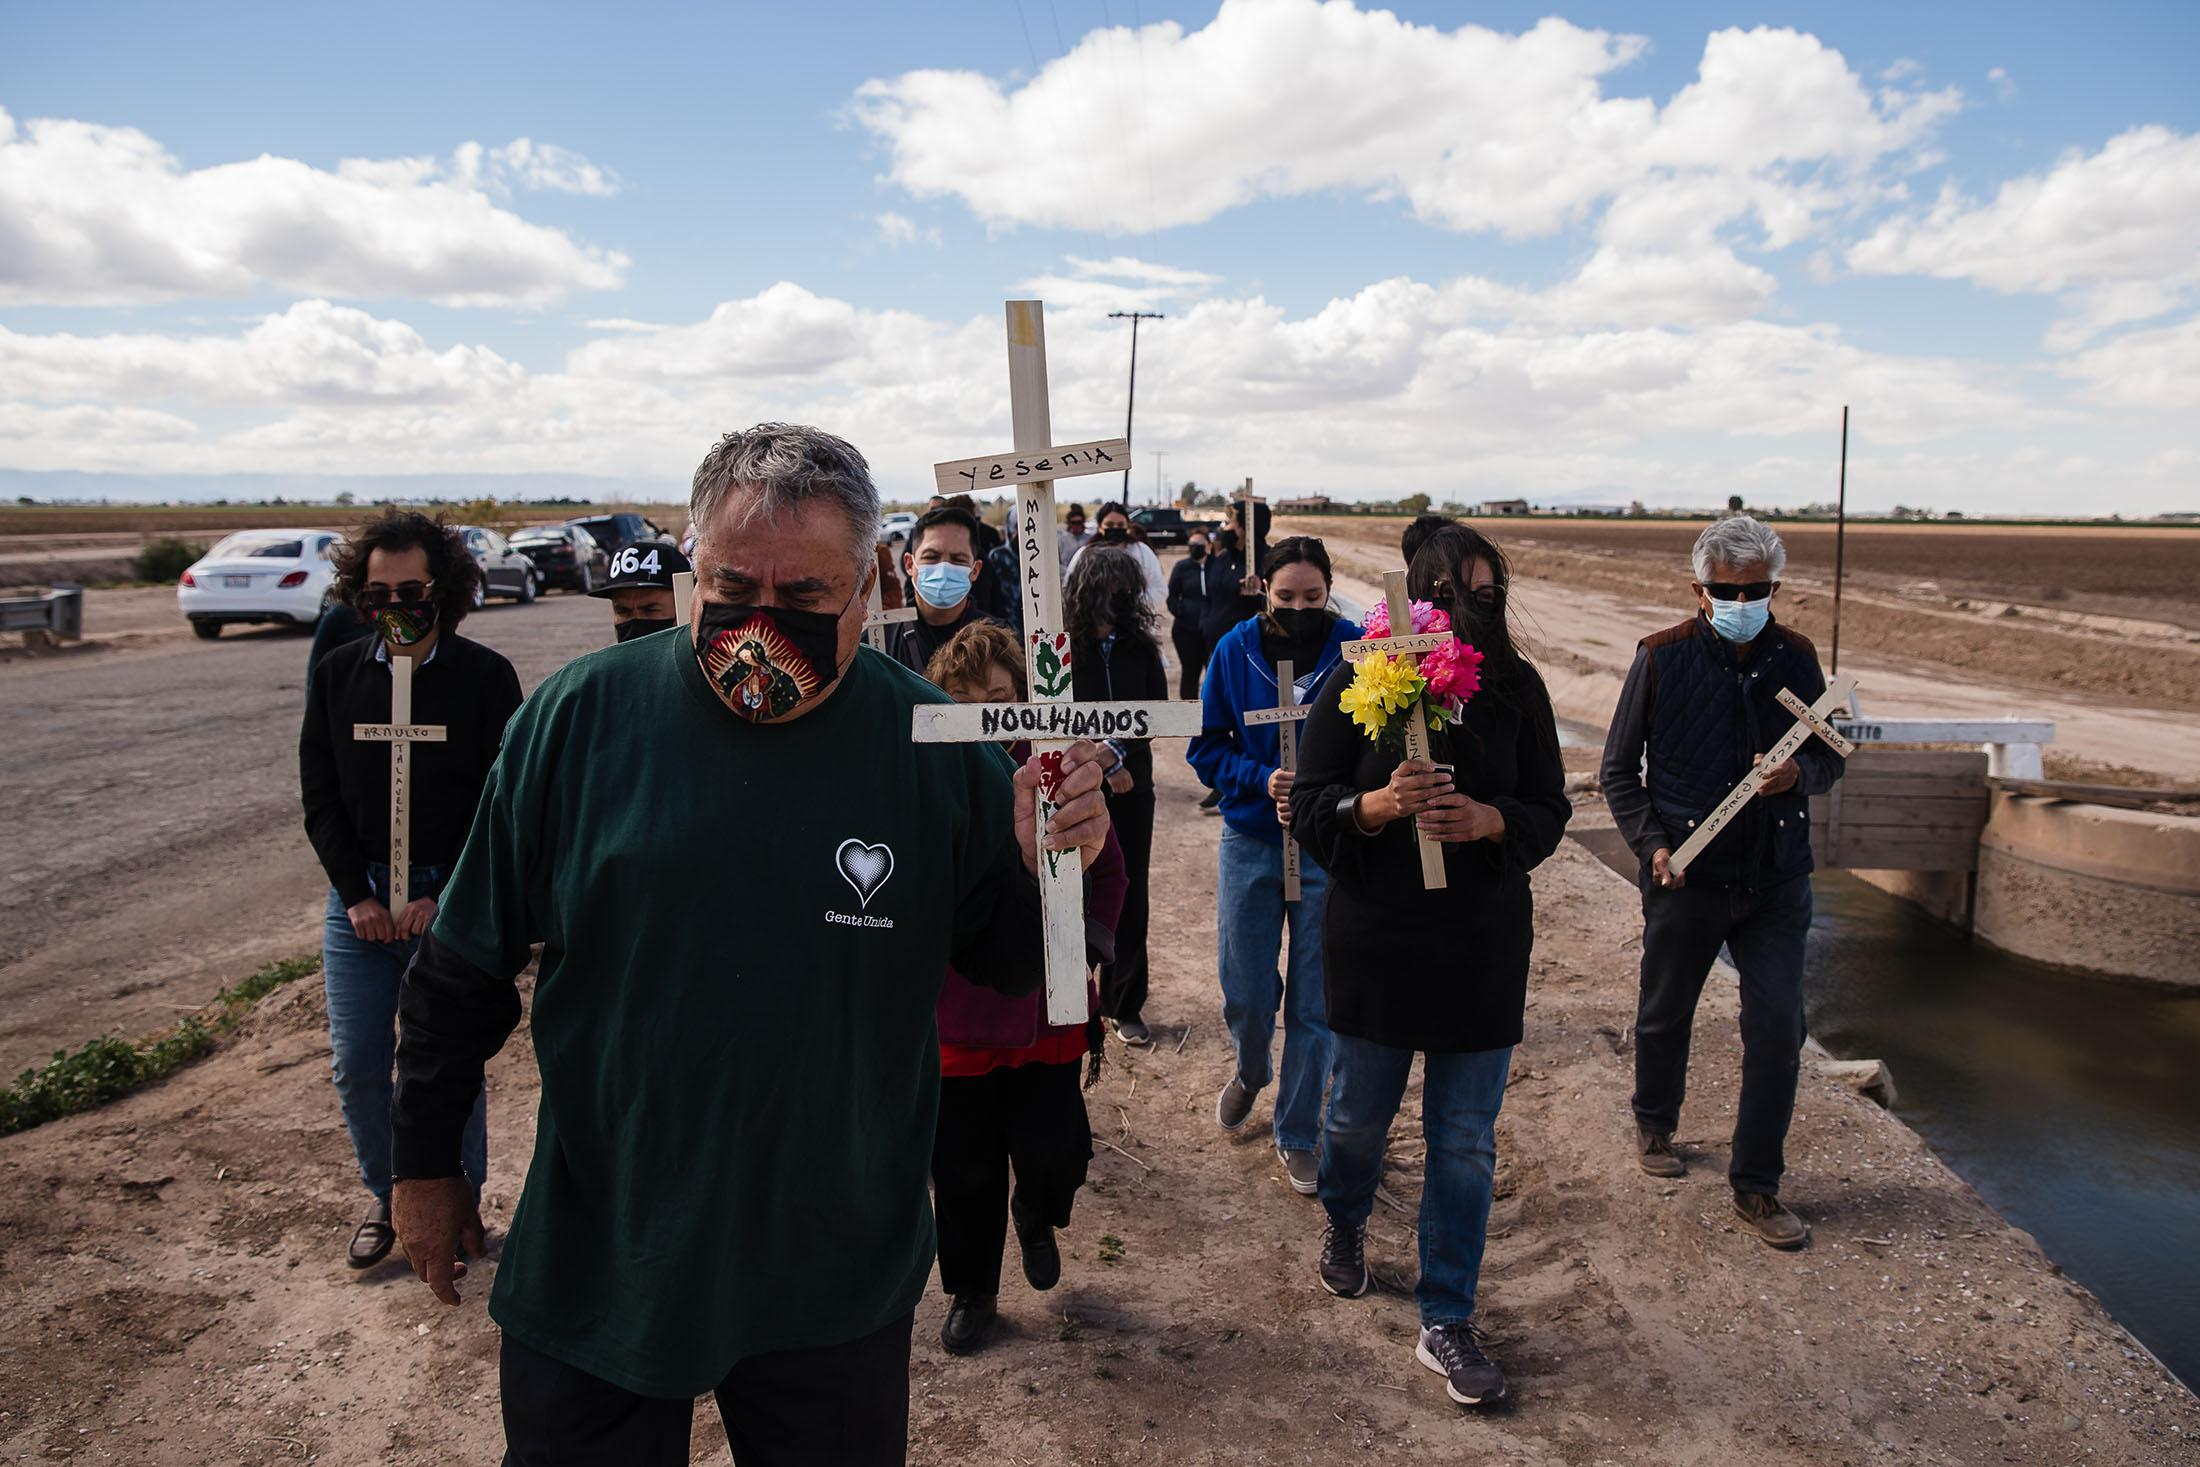 Enrique Morones (center) of Gente Unida leads a group of mourners for the 13 undocumented immigrants who died in early March when an SUV and a tractor-trailer collided near Holtville, California.